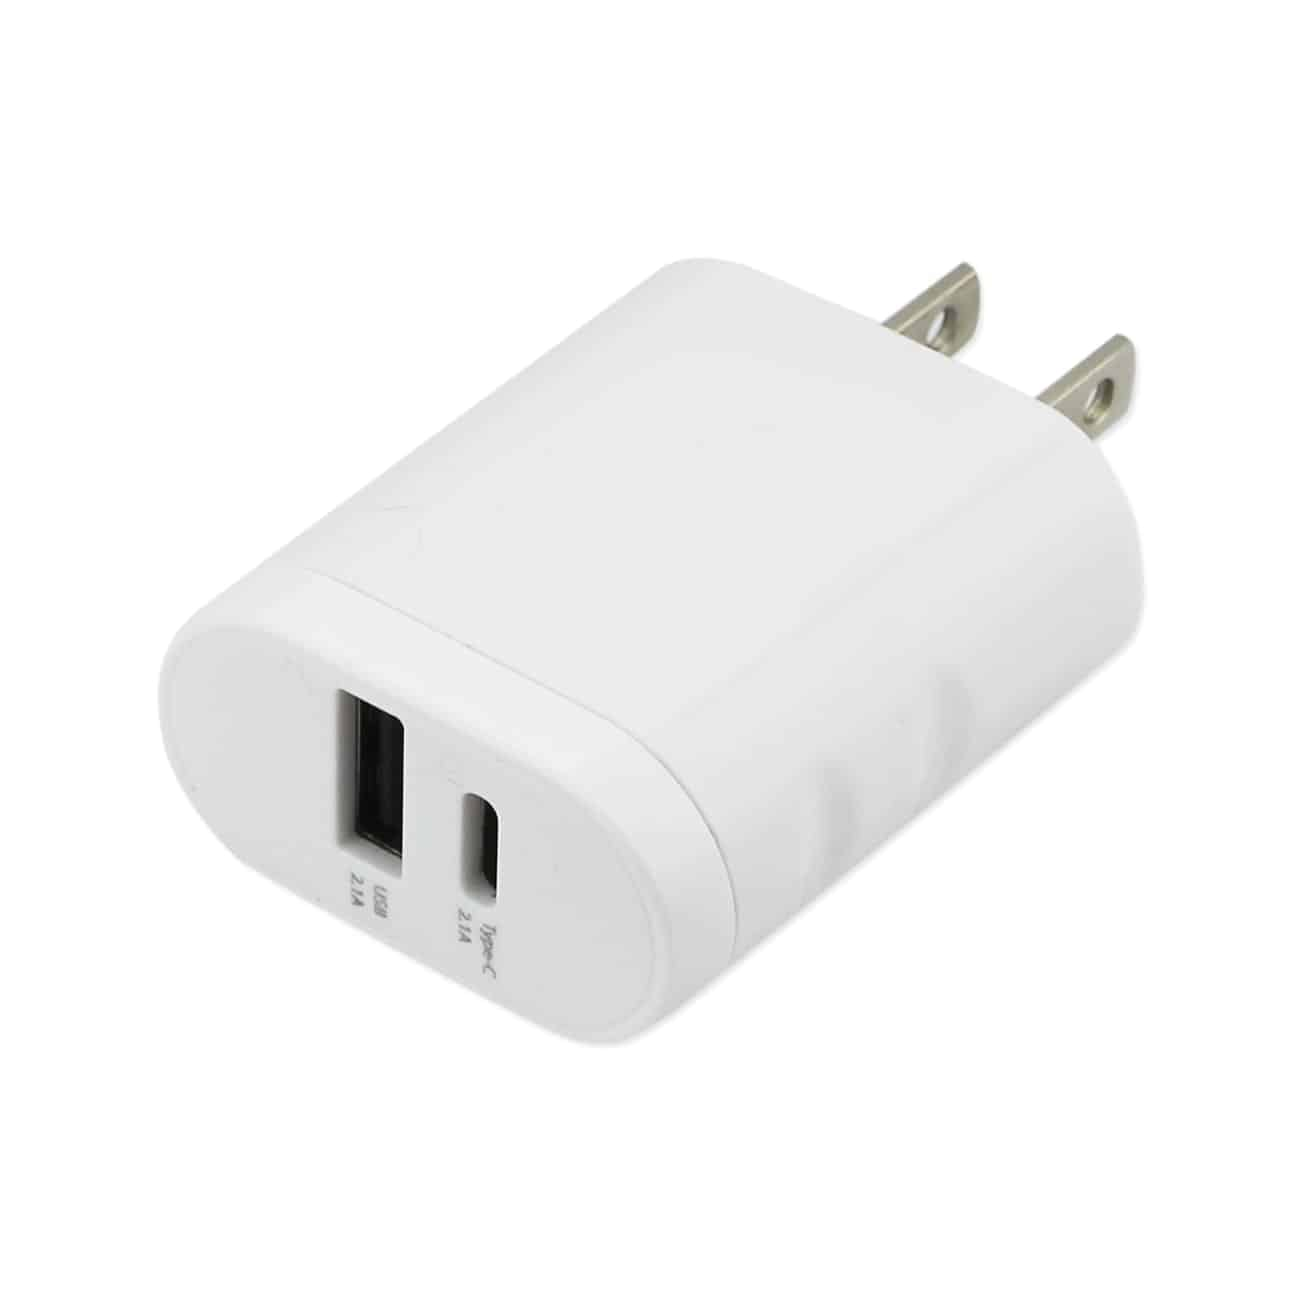 TYPE C 4 AMP HOME TRAVEL CHARGING STATION IN WHITE